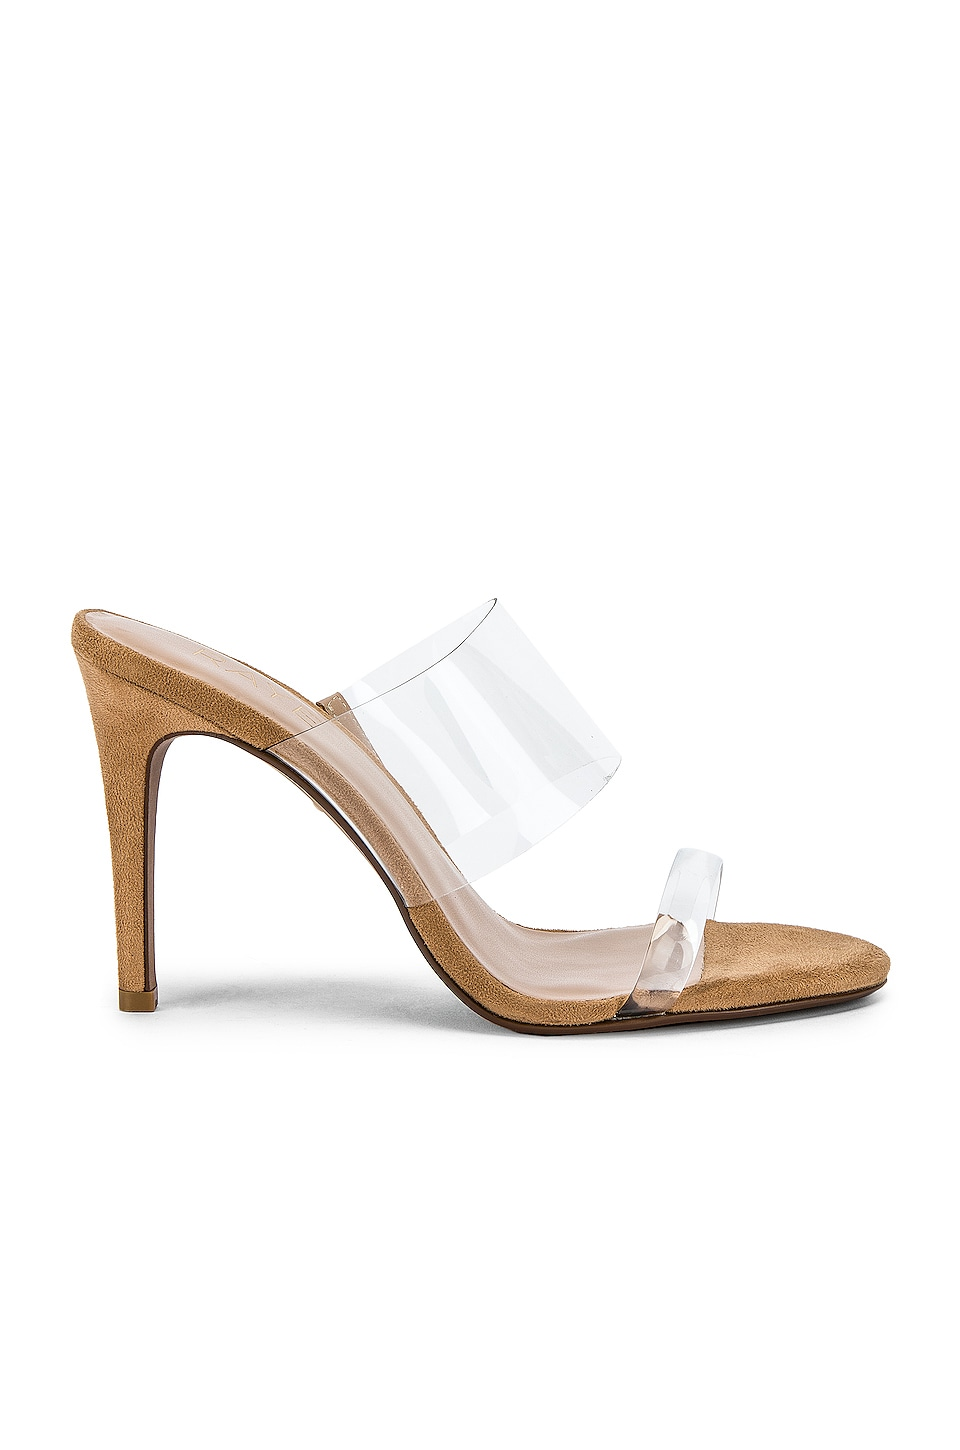 RAYE Summer Heel in Tan